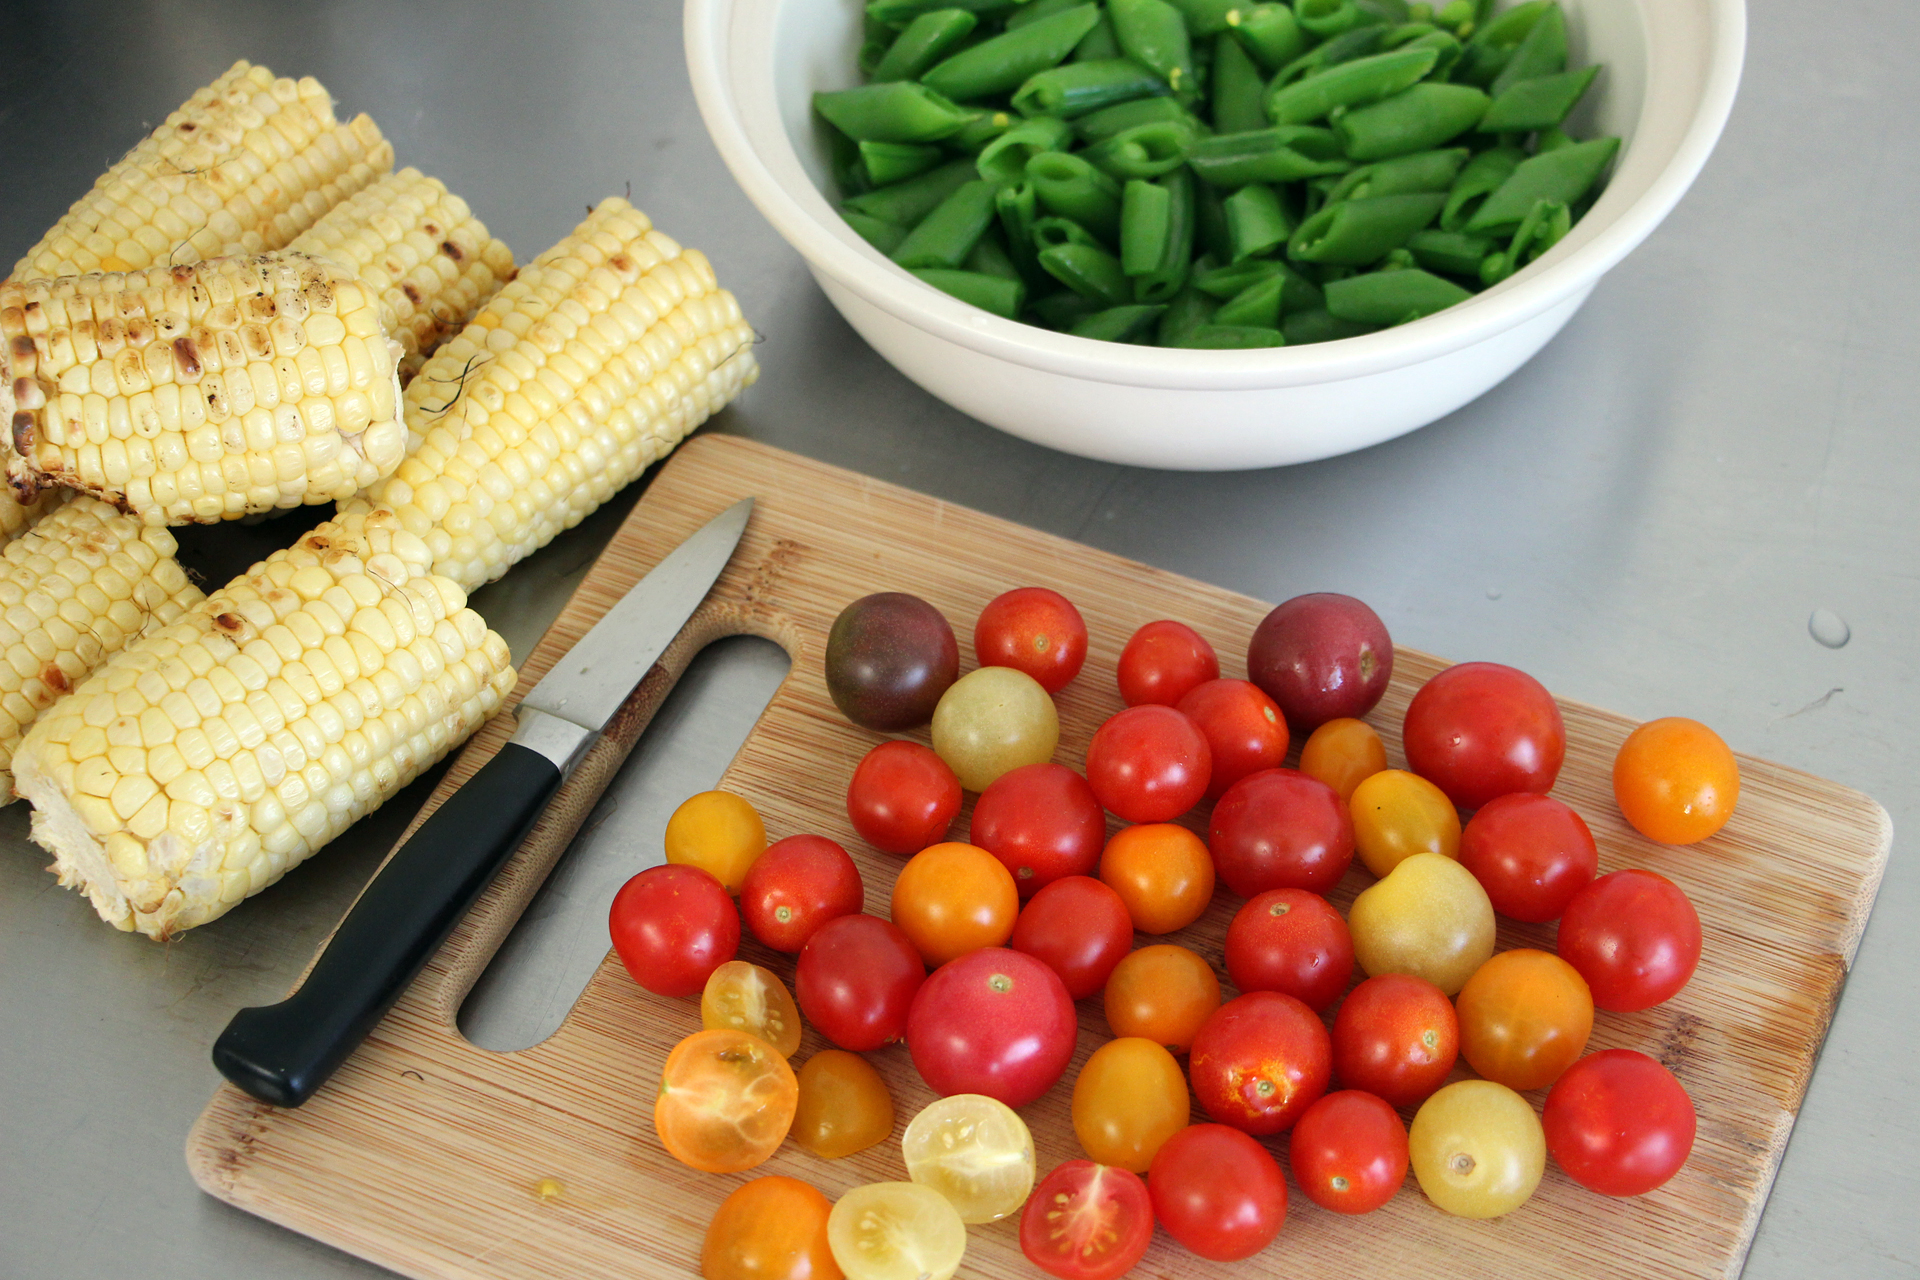 Salad Ingredients: Grilled Corn, Sugar Snap Peas and Cherry Tomatoes